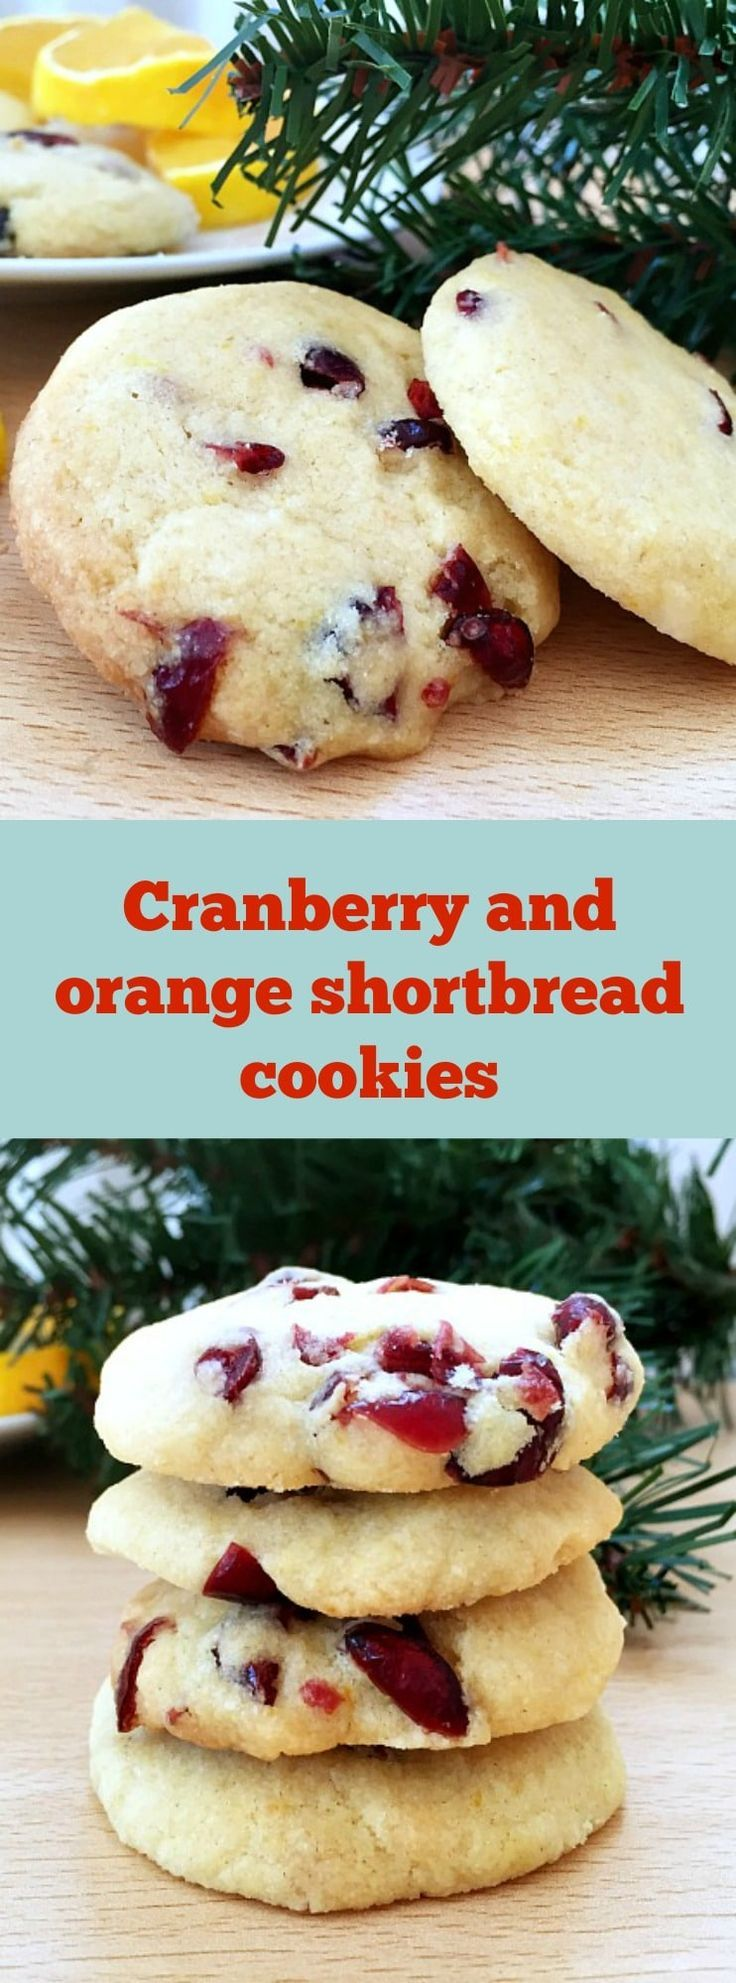 Cranberry orange shortbread cookies, the best Christmas baking treats. They are perfectly soft, crumbly, buttery, pure delish. #cranberryorangeshortbreadcookies, #shortbreadcookies, #christmascookies